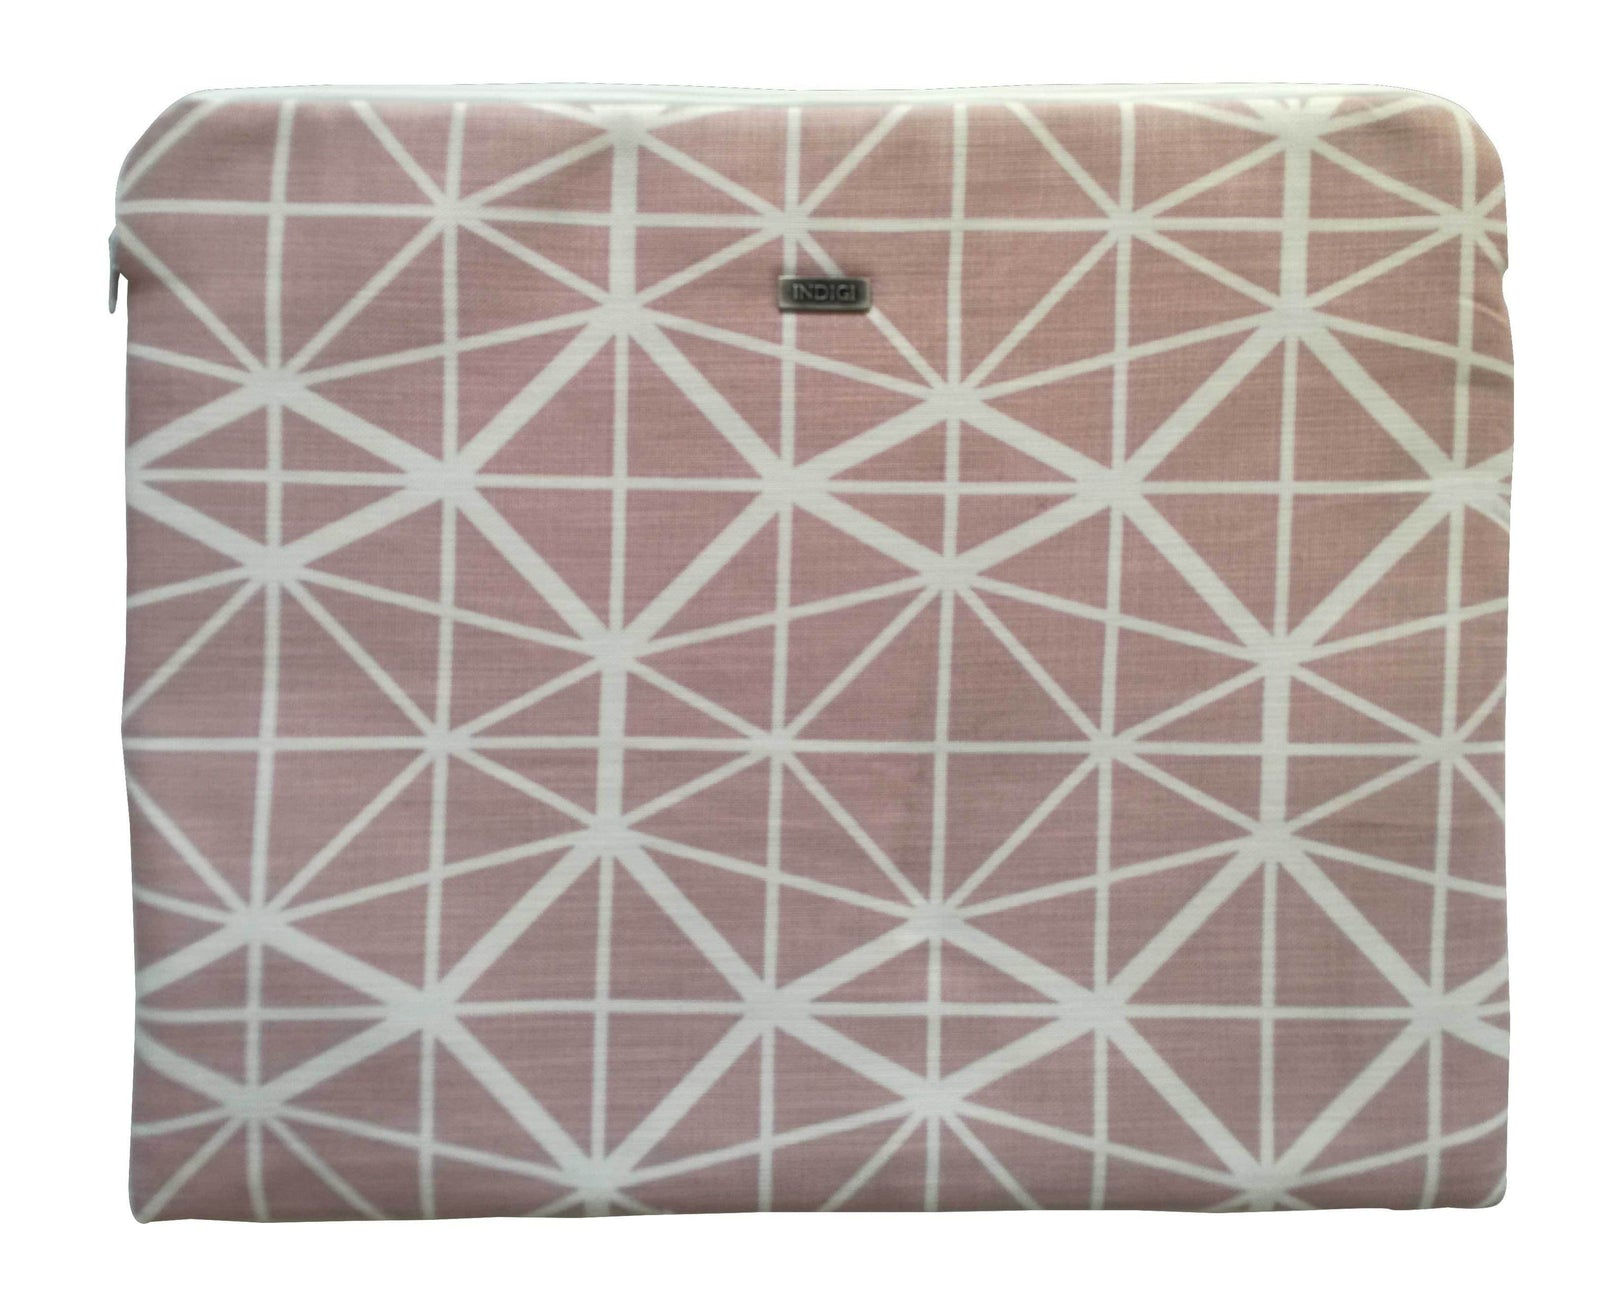 Facet Nude Pink Laptop Sleeve 15 Inch